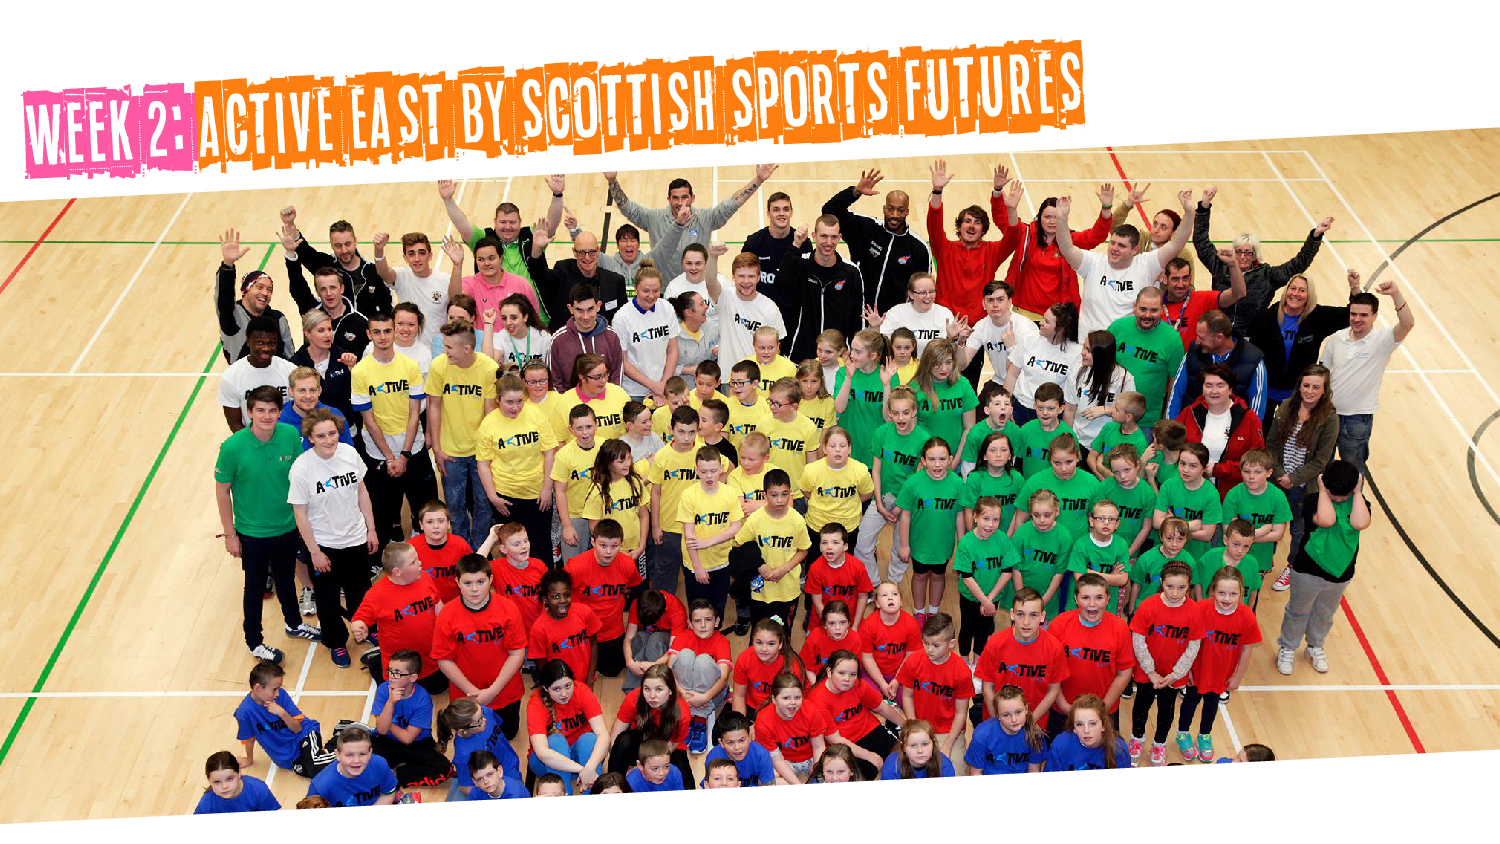 IYM Week 2: Active East by Scottish Sports Futures